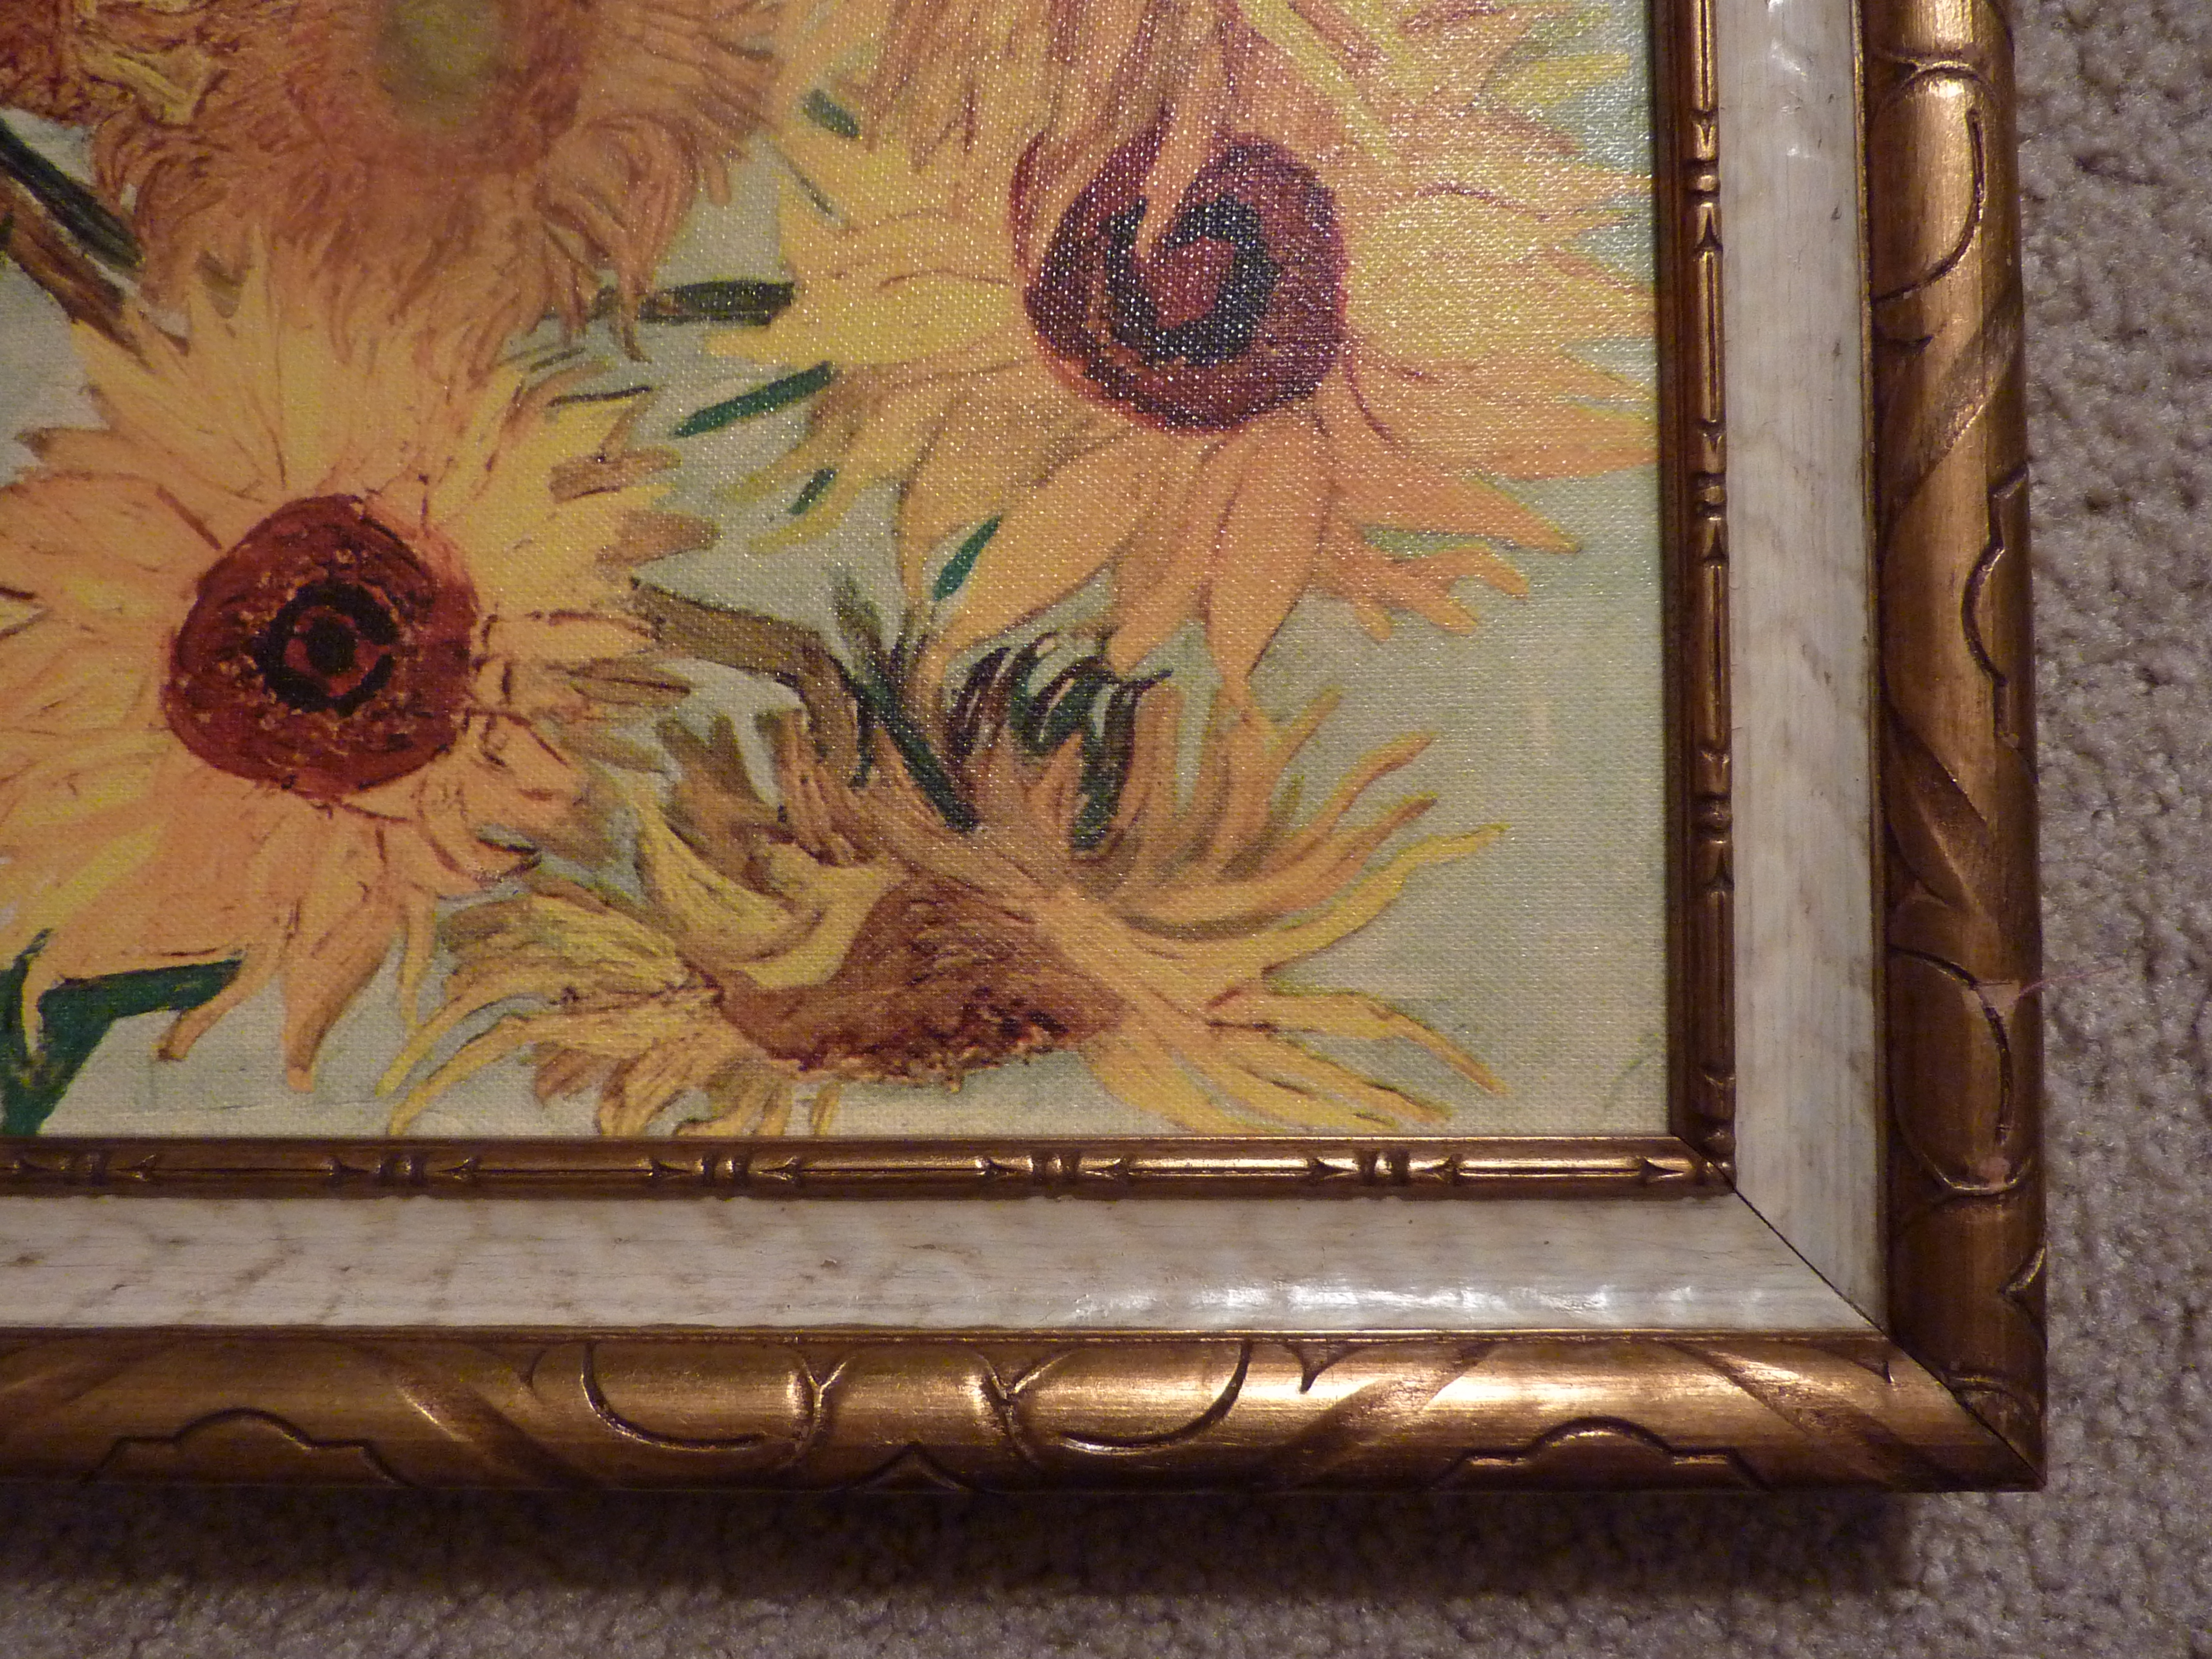 Mass-Produced van Gogh with an ornate frame